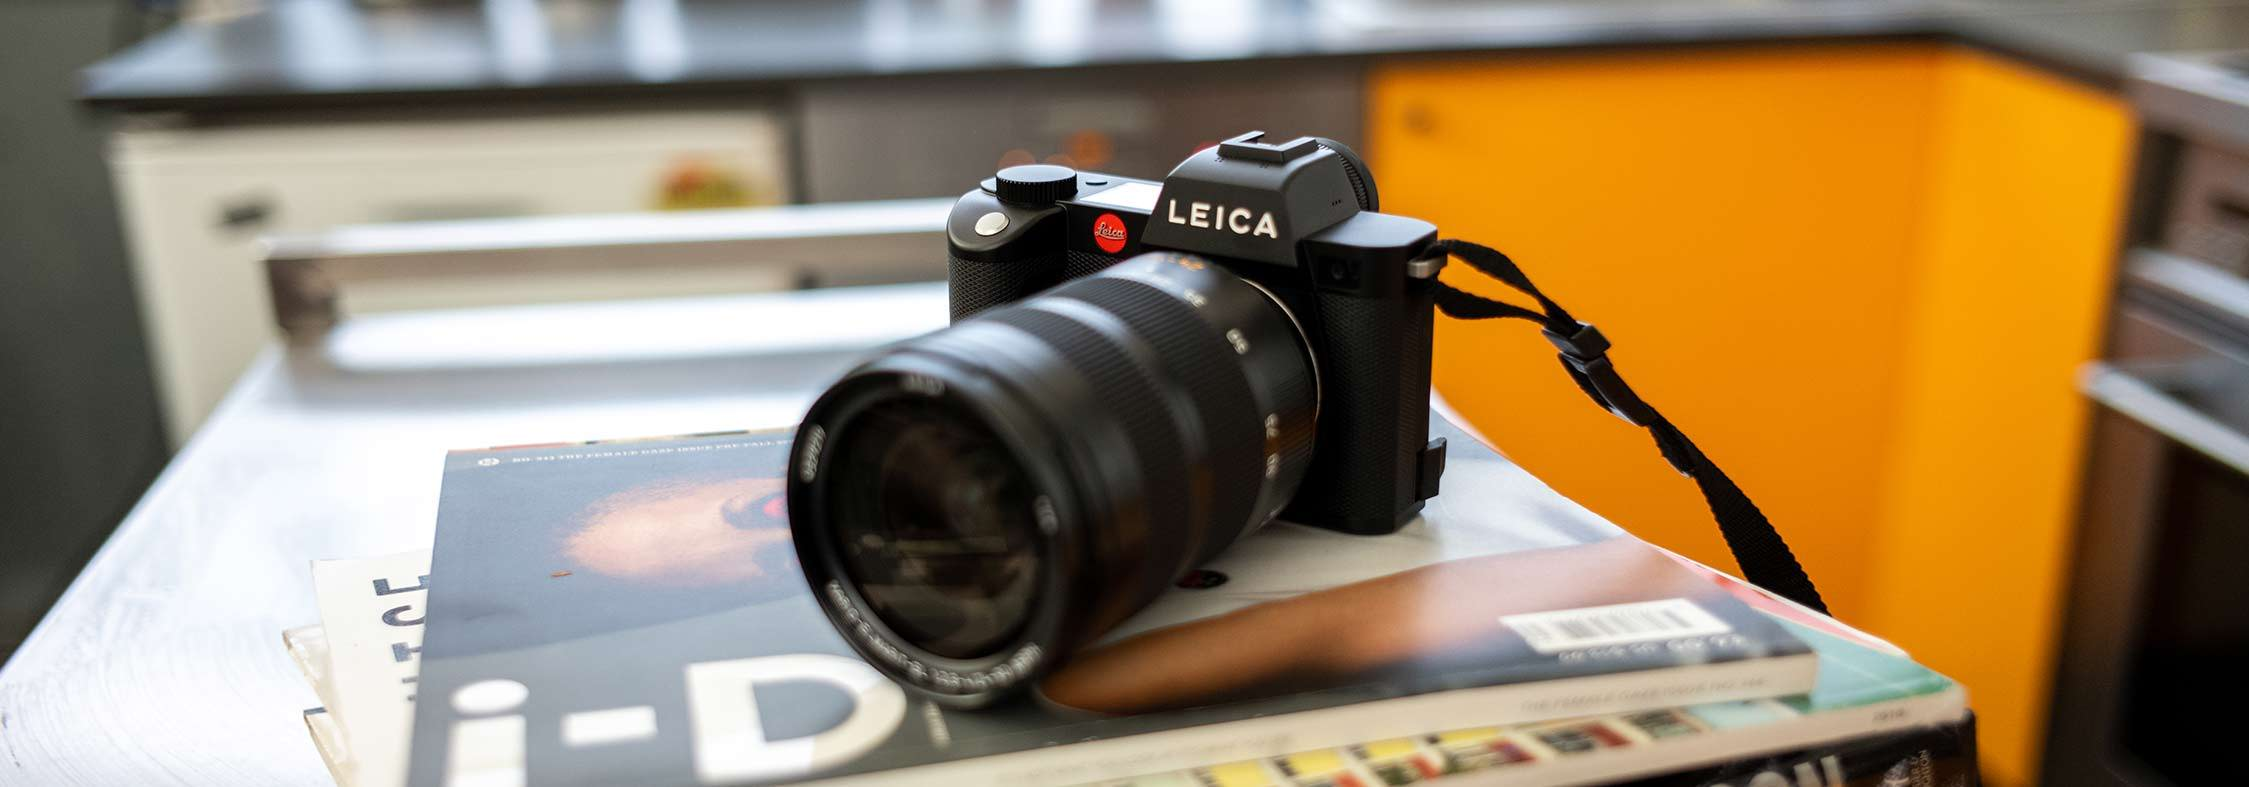 Leica SL2 Camera for Test Drive